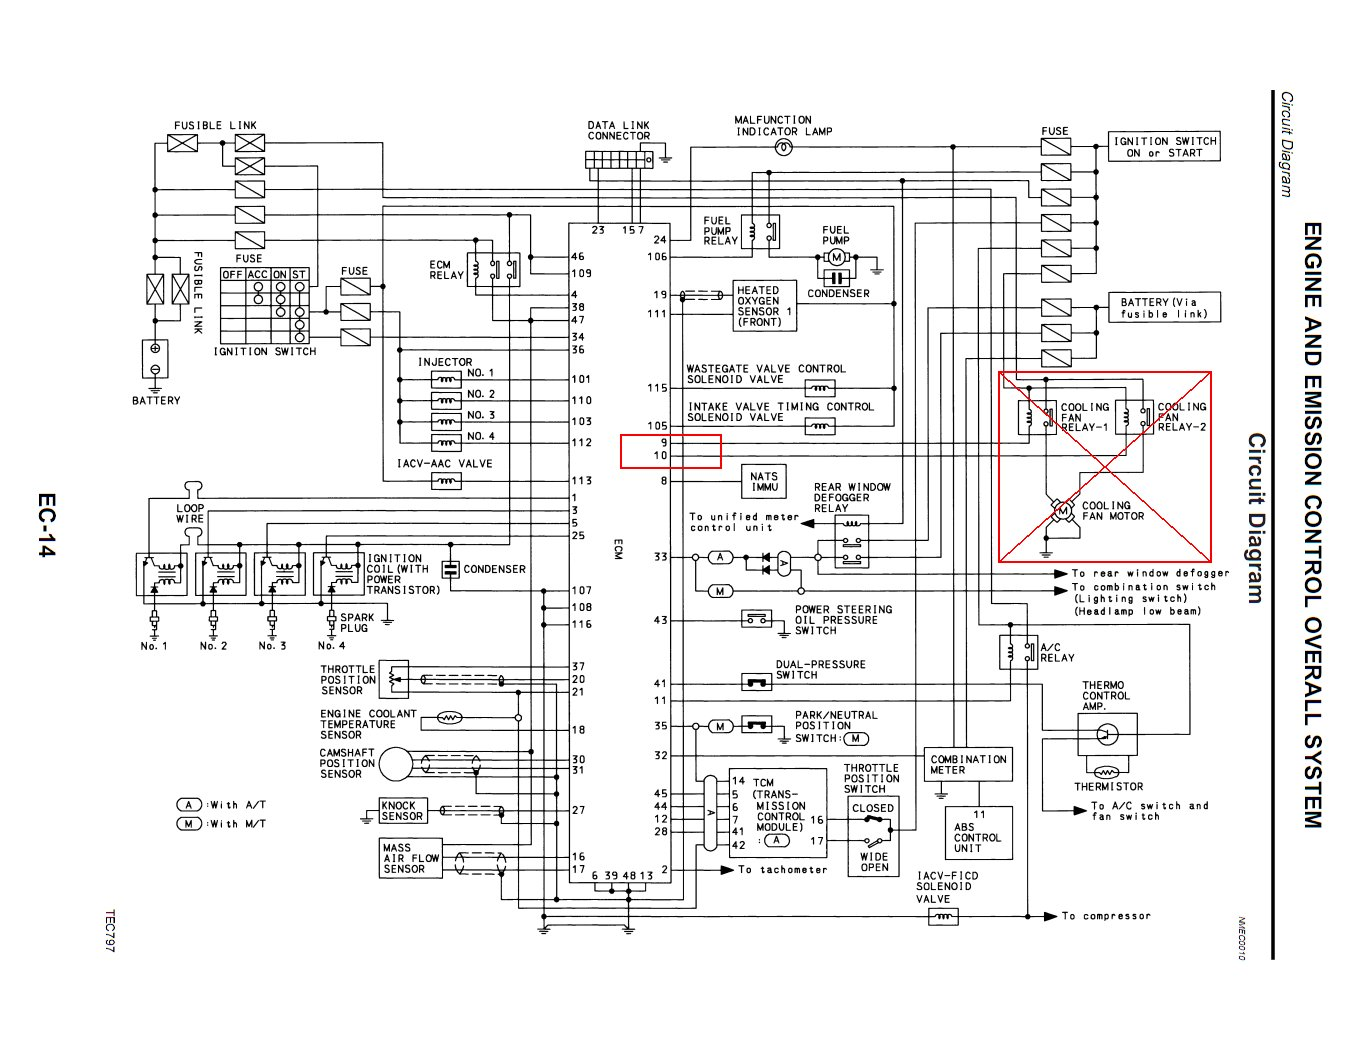 hight resolution of engine wiring harness diagram sr20det wiring harness sr20det ecu s13 sr20det into s14 wiring diagram